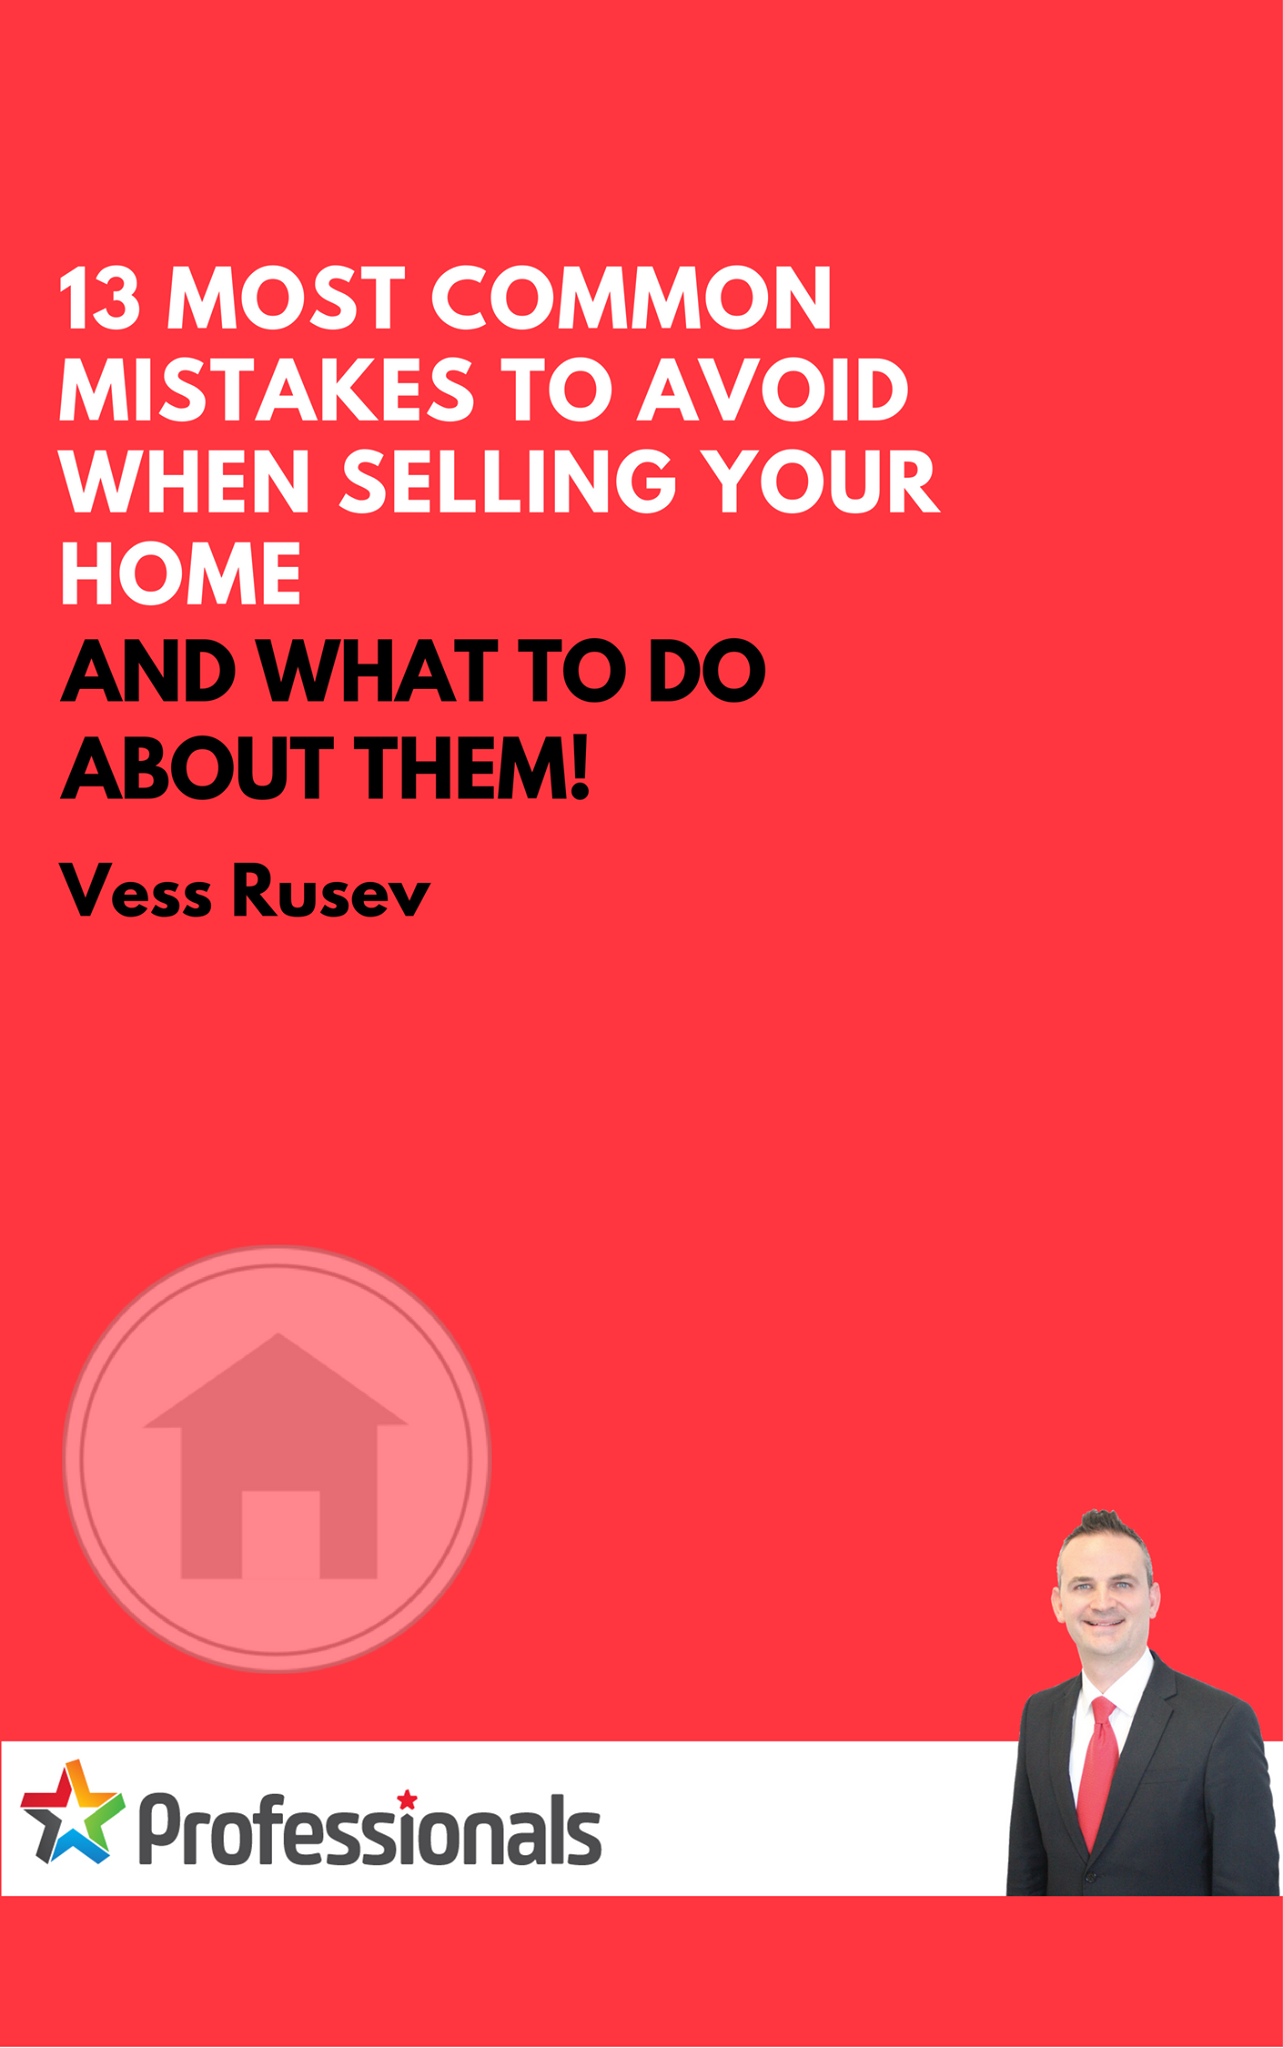 Vess rusev property marketer lovegrove realty selling your home can be one of the most exciting times in your life an opportunity to move to a new location and hopefully make a profit from the sale of fandeluxe PDF